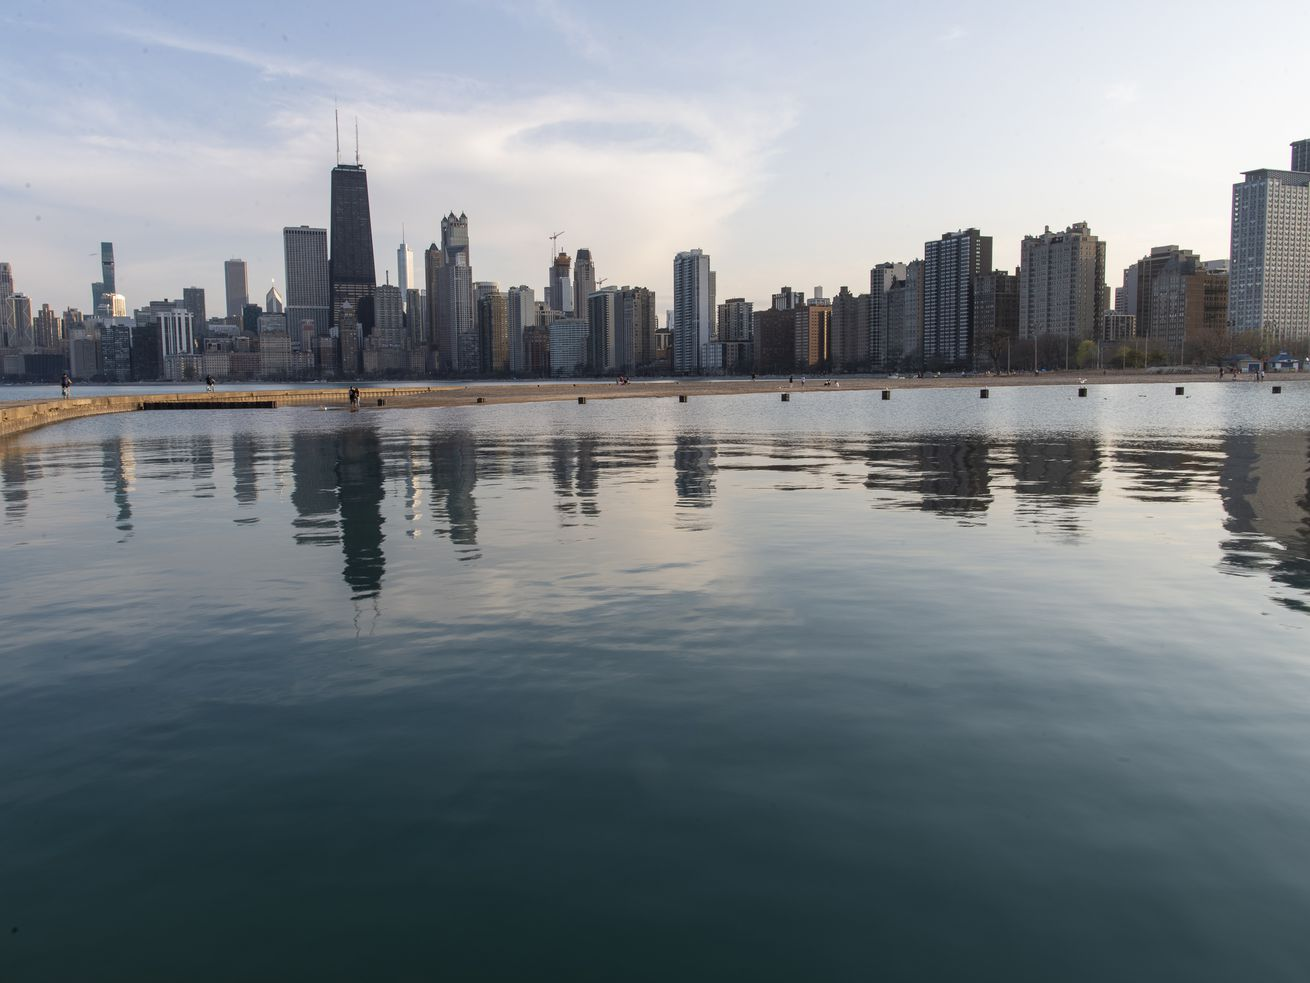 Chicago Skyline seen on a path that juts out into Lake Michigan near North Avenue Beach on April 7, 2021.